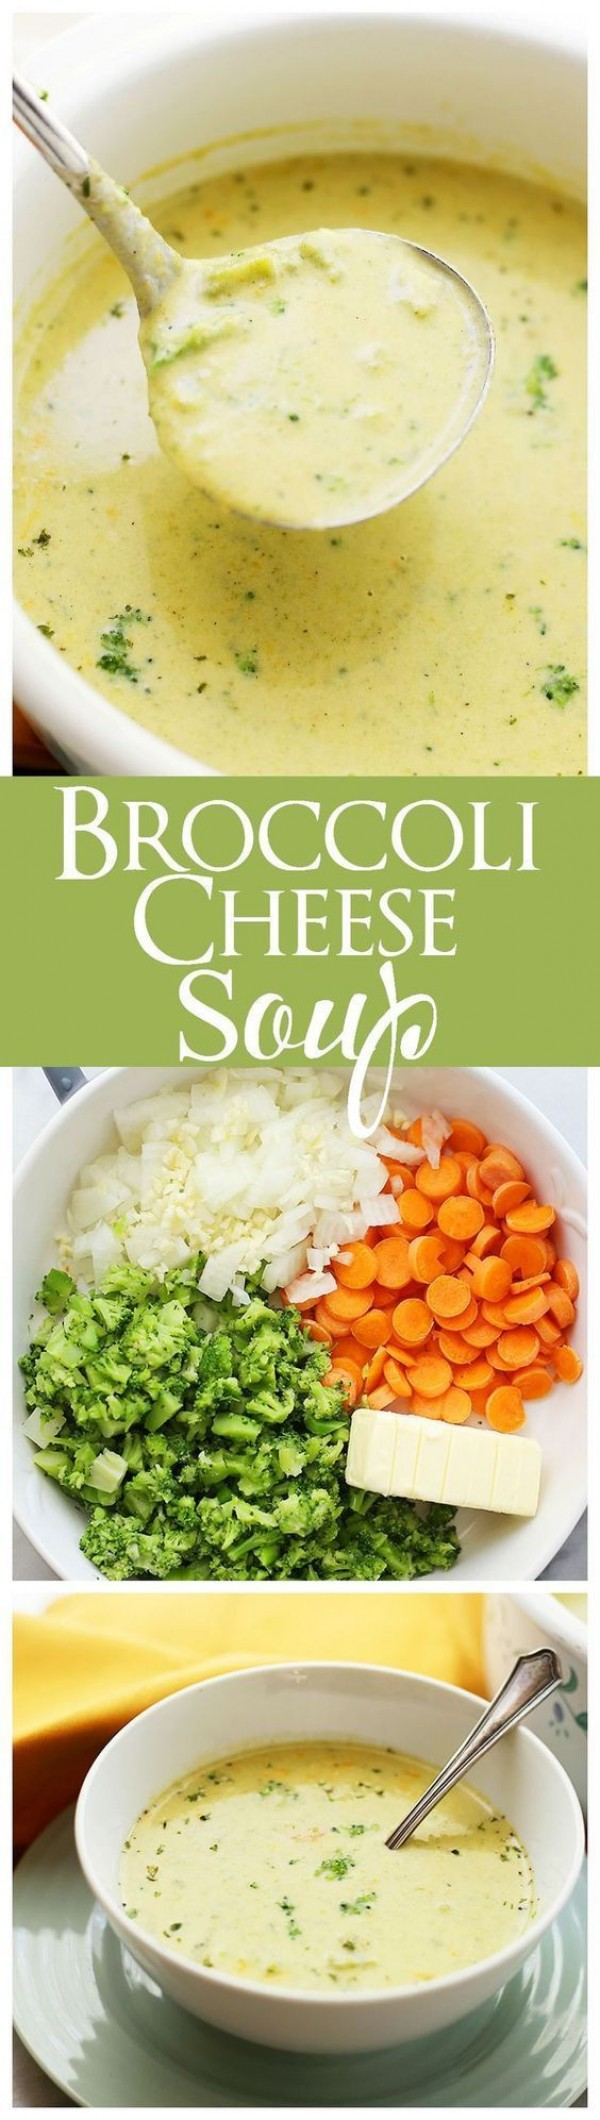 Get the recipe Broccoli Cheese Soup @recipes_to_go